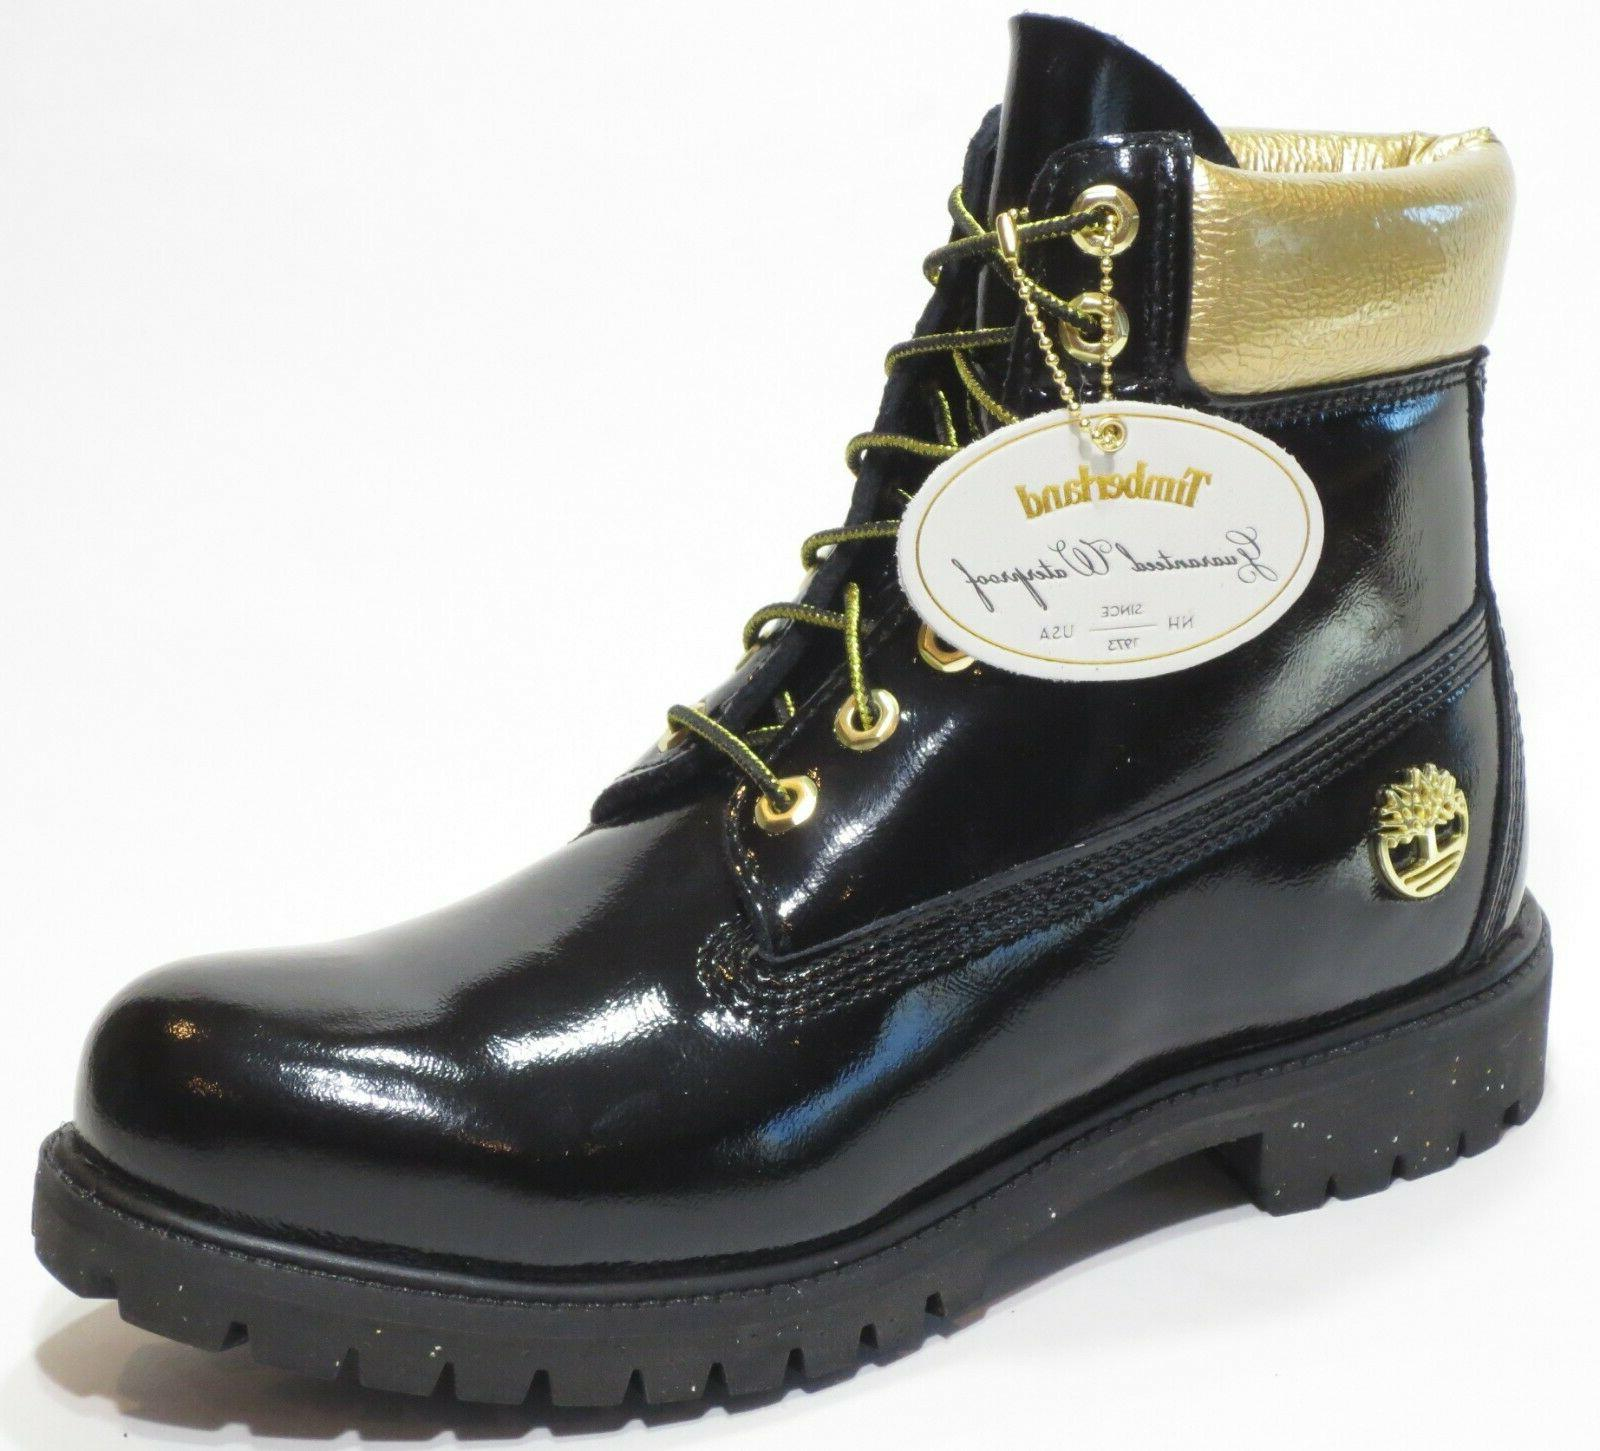 TIMBERLAND 6 INCH PREMIUM BOOTS GLOSS BLACK MENS SPECIAL